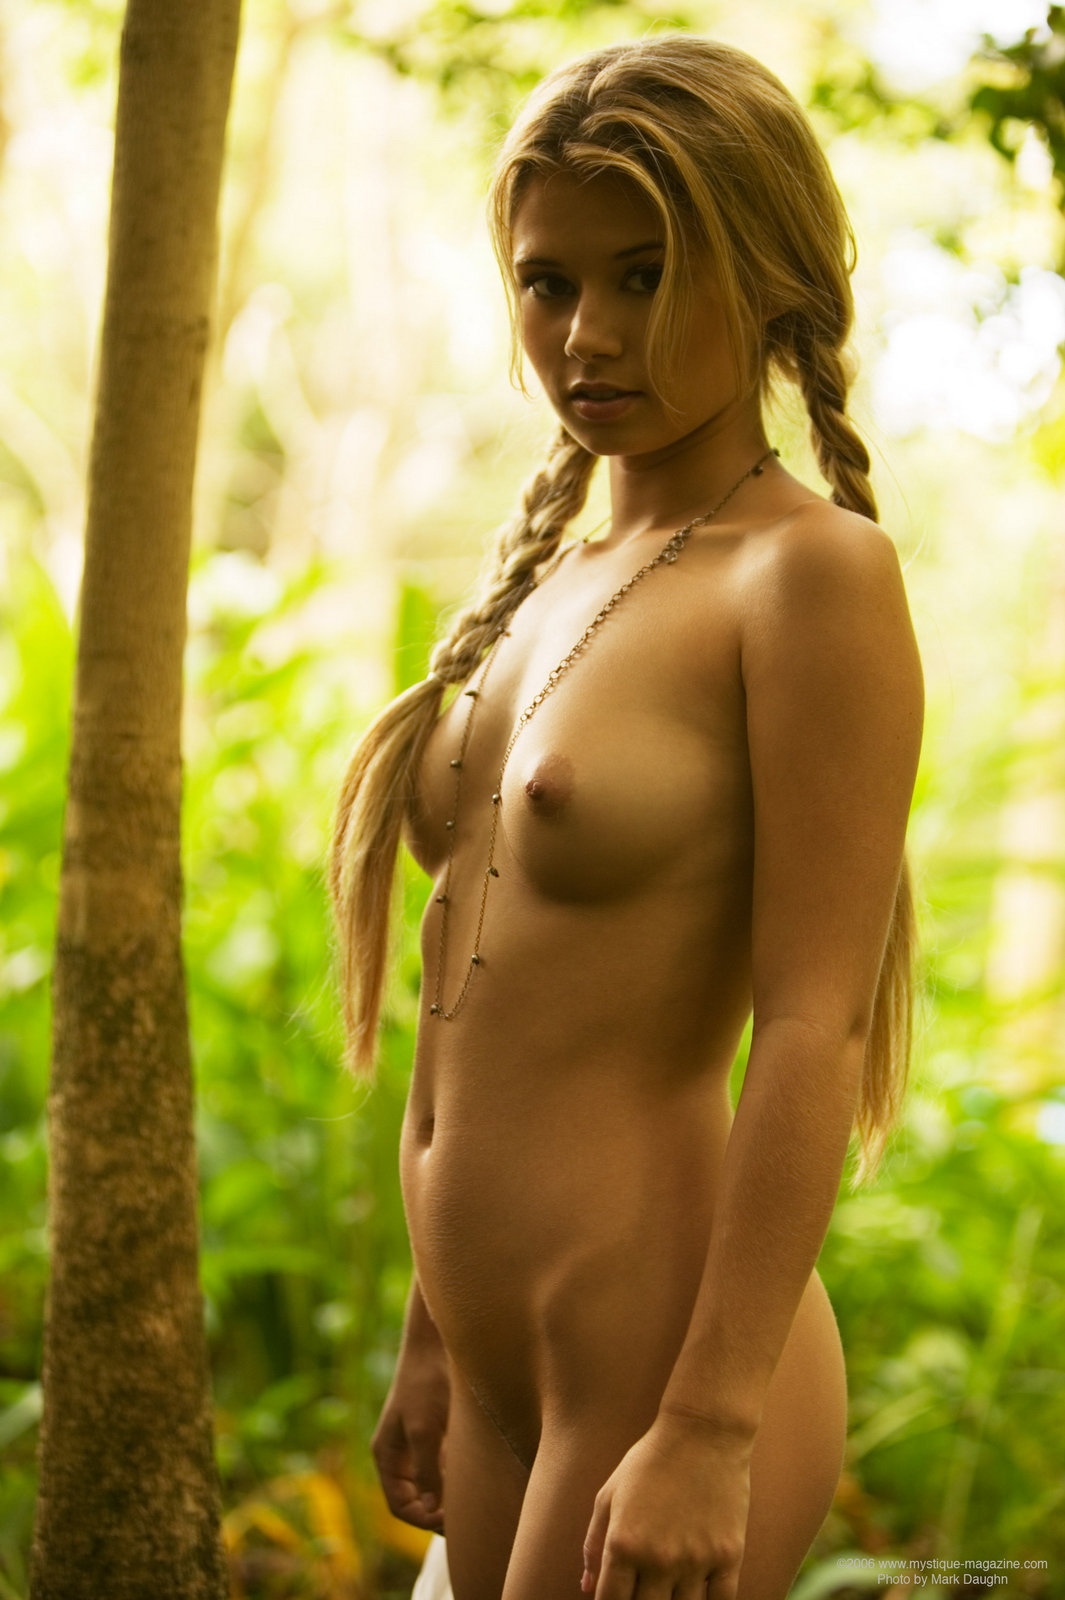 jannah-burnham-woods-blonde-pigtails-naked-mystique-magazine-12